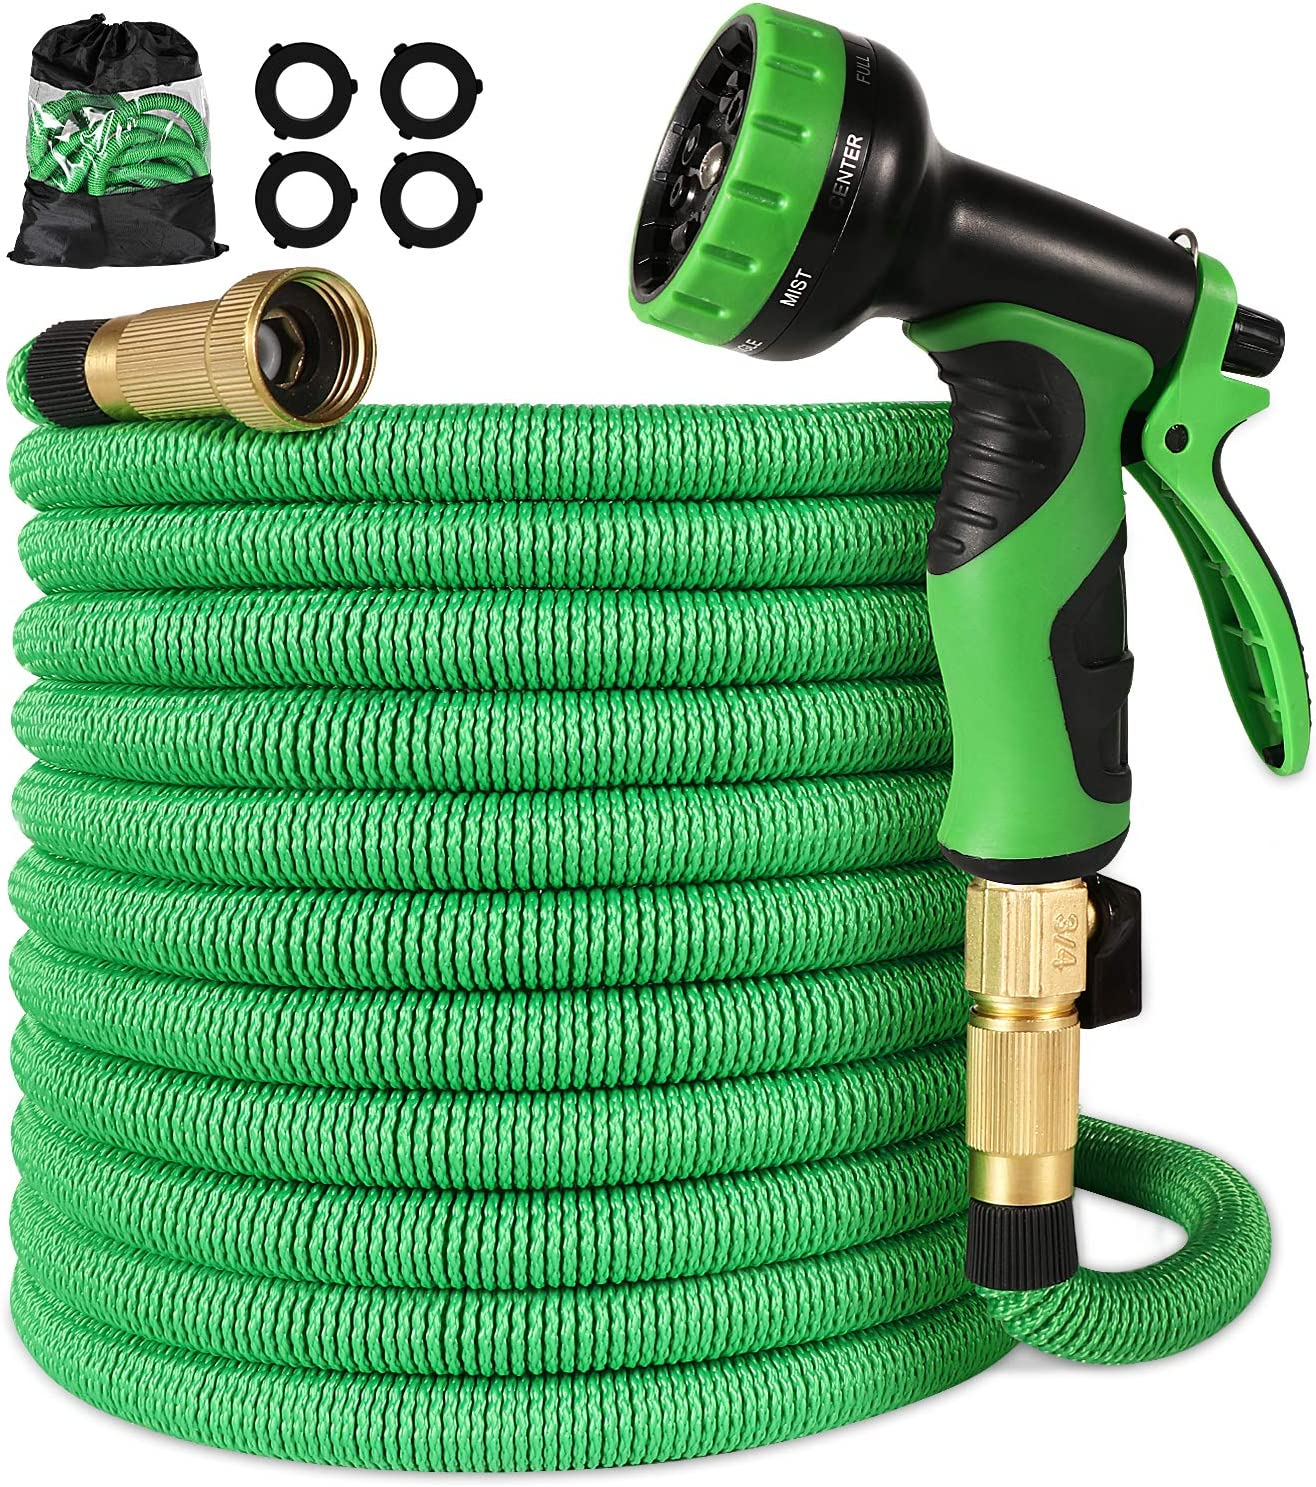 Linquo 150 ft Garden Hose - Upgraded Expandable Water Hose with 9 Pattern Spray Nozzle, 3/4 Solid Brass Connectors, Retractable Latex Core - New Flexible Expanding Hose